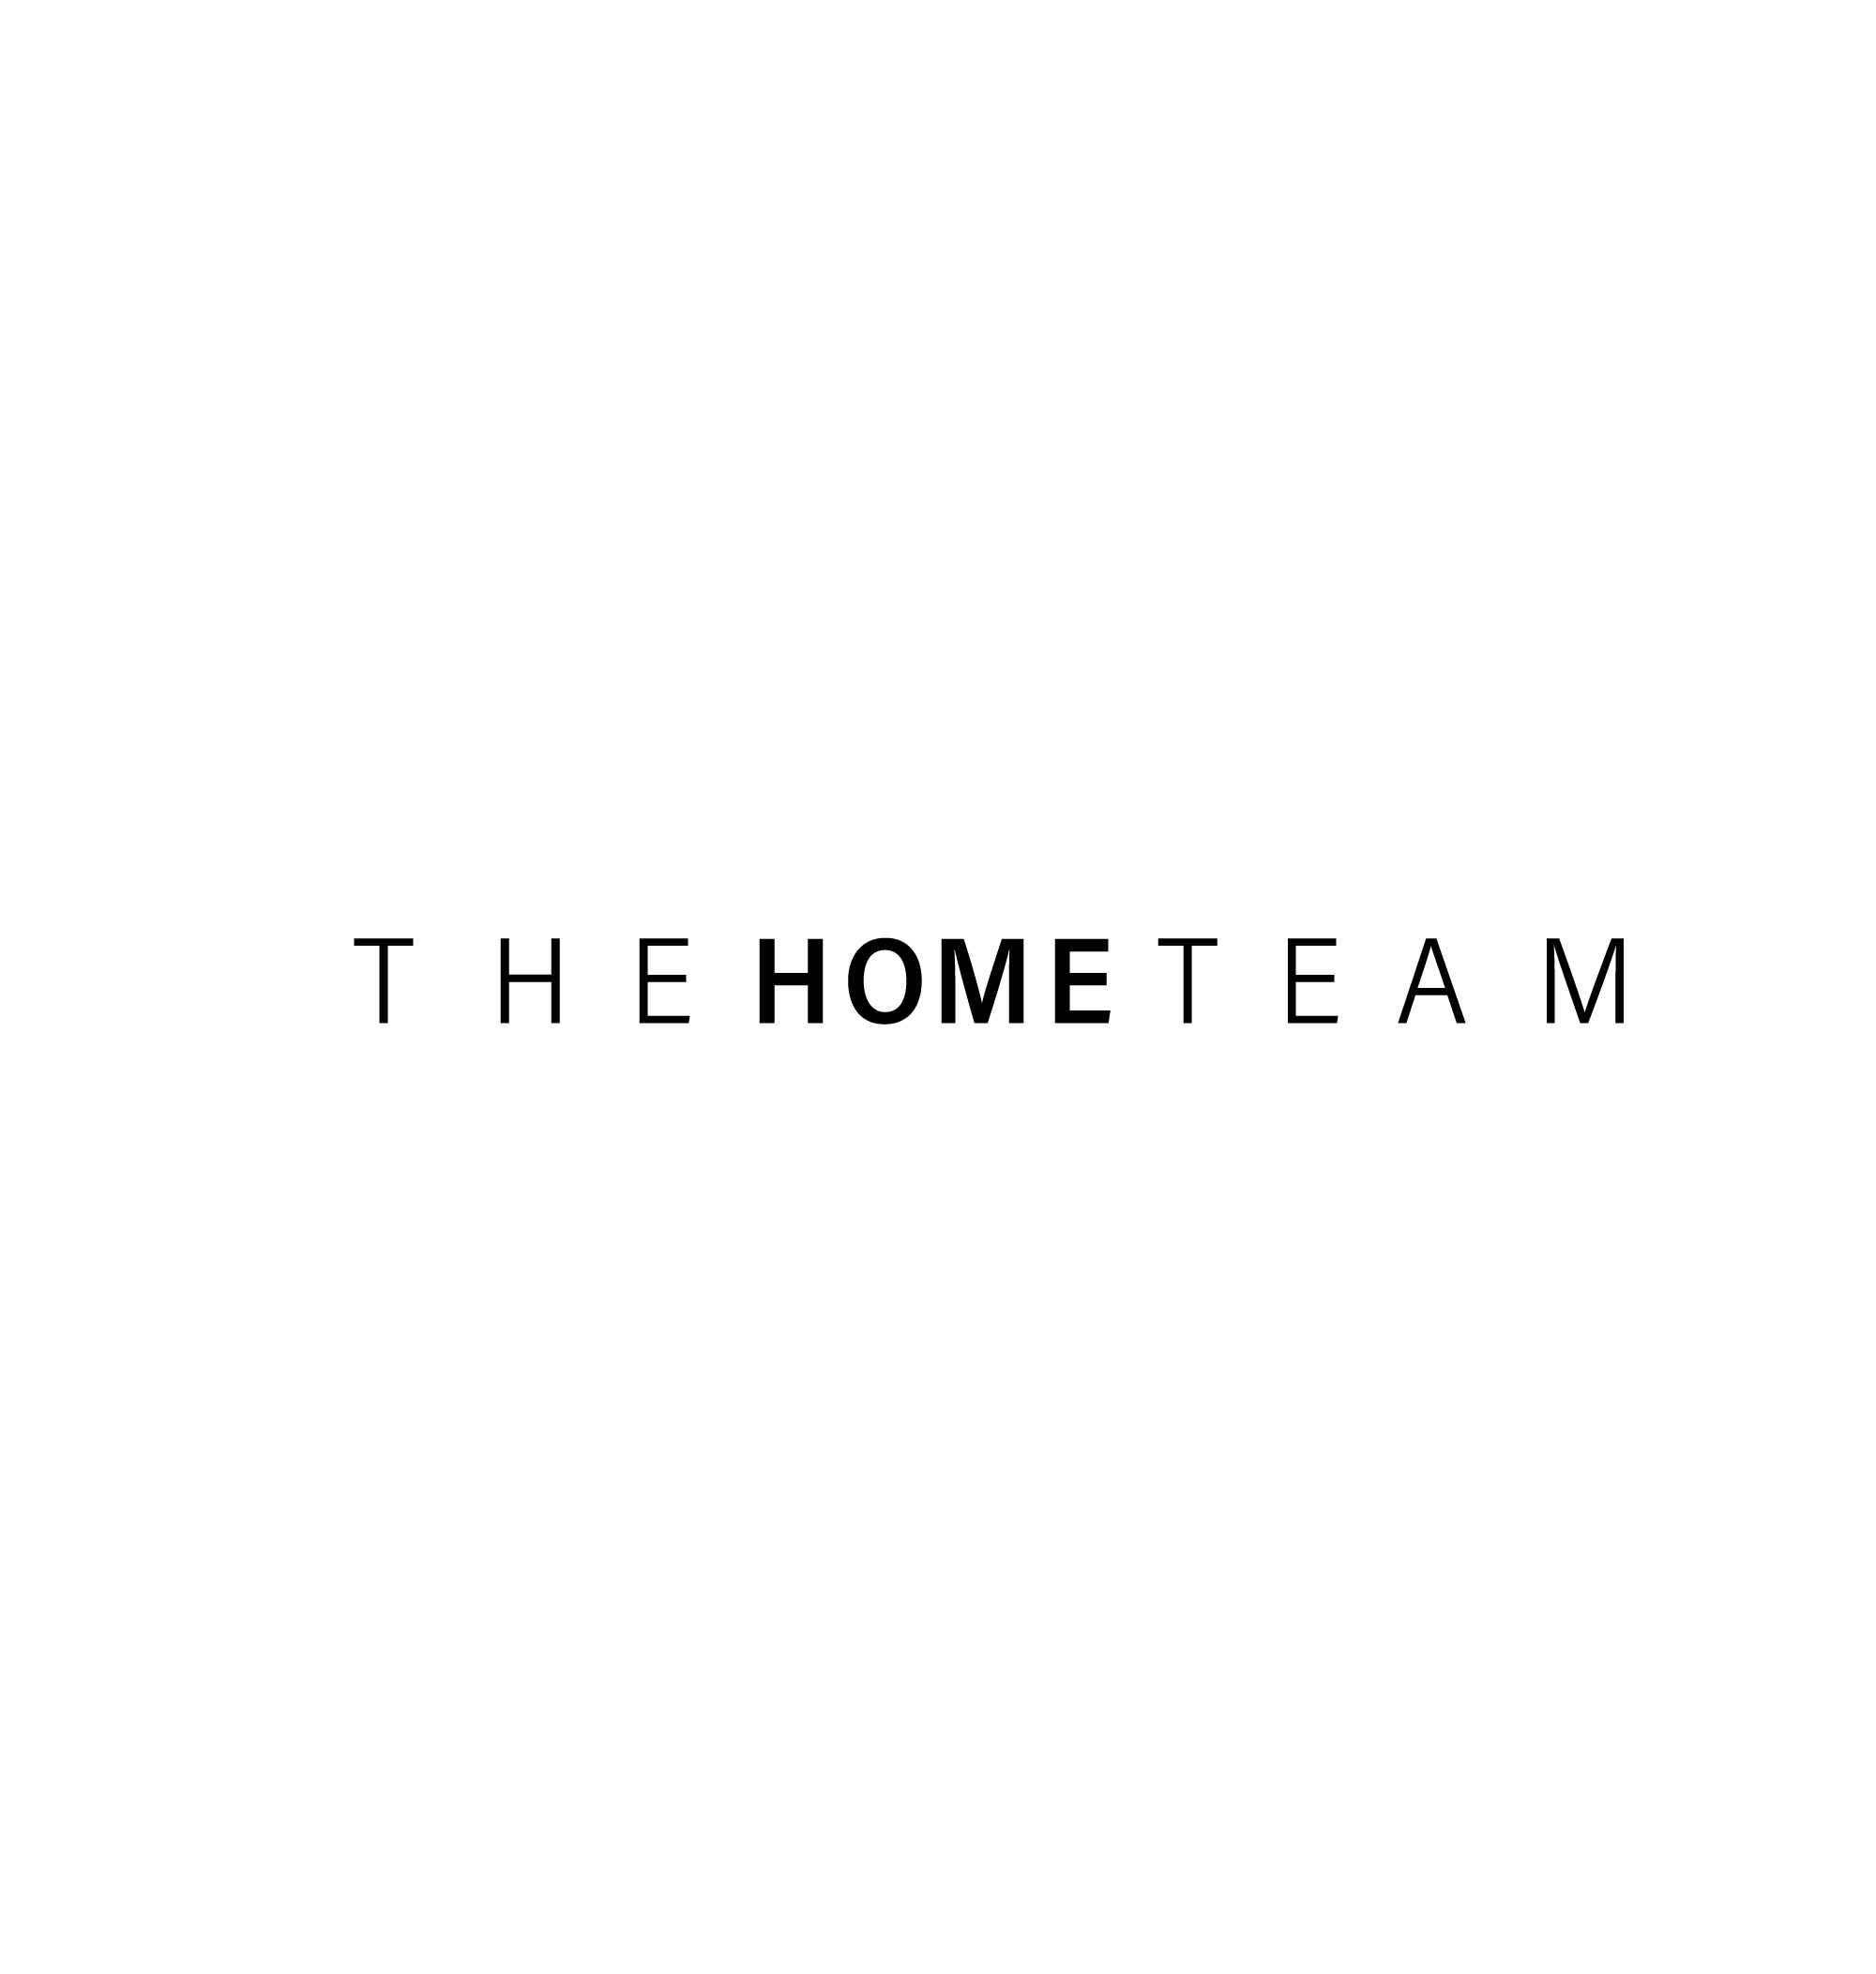 The Home Team documentary film